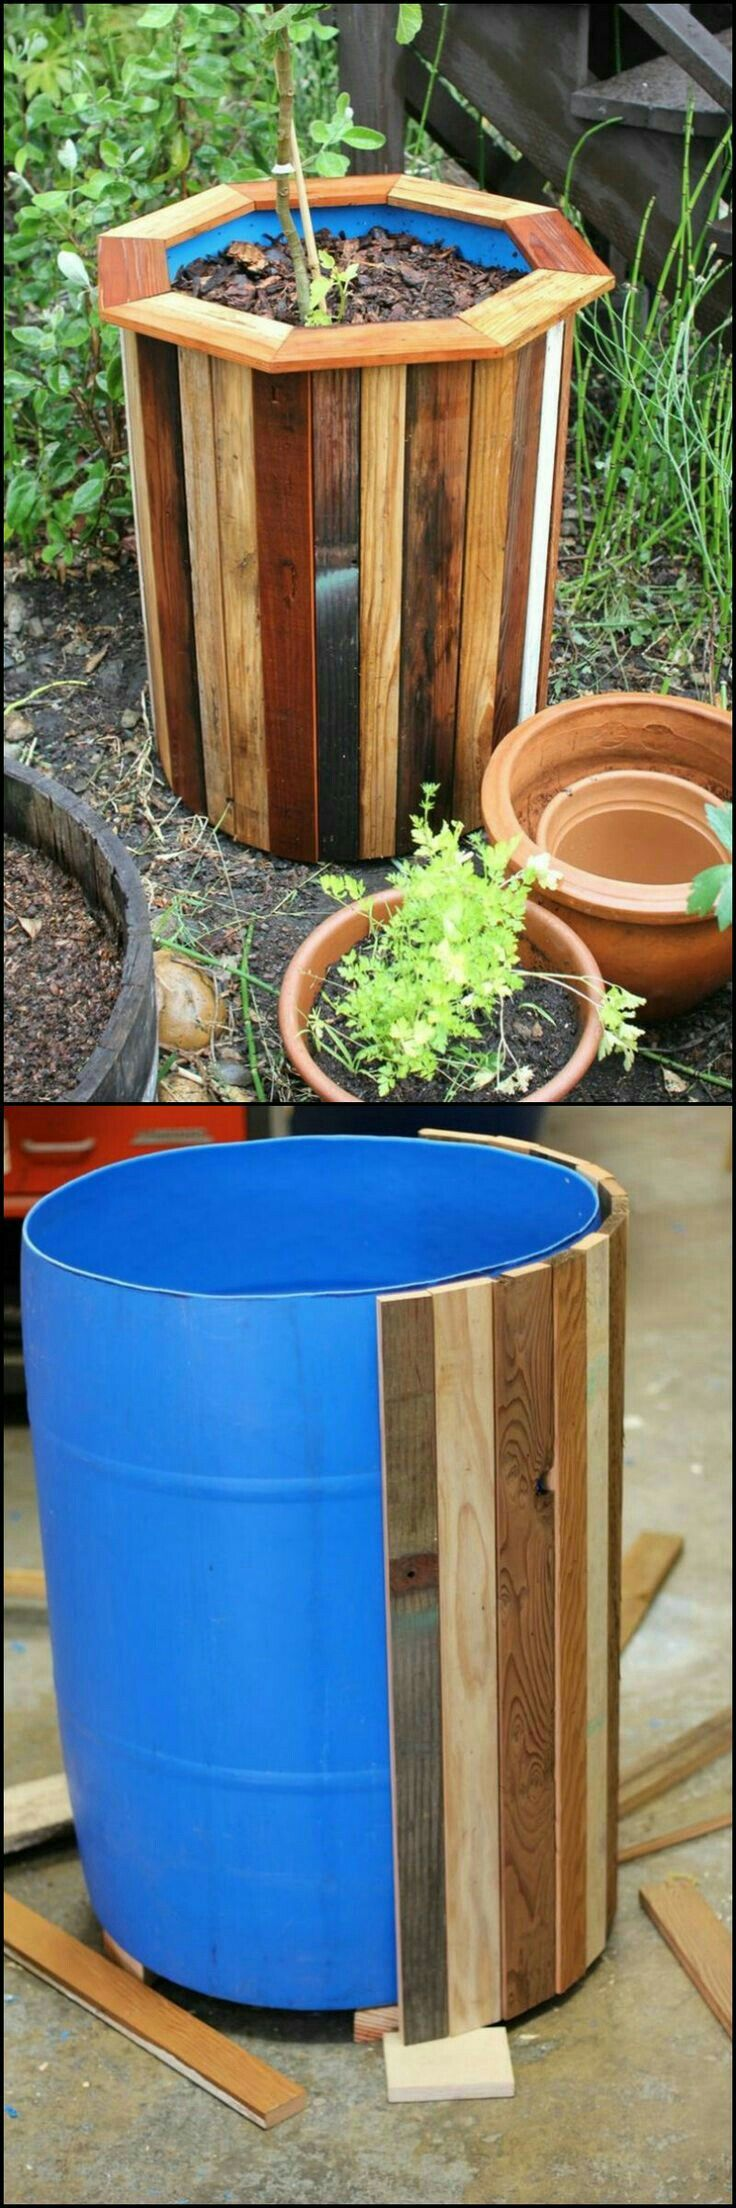 Use Plastic Barrels And Cover In Wood